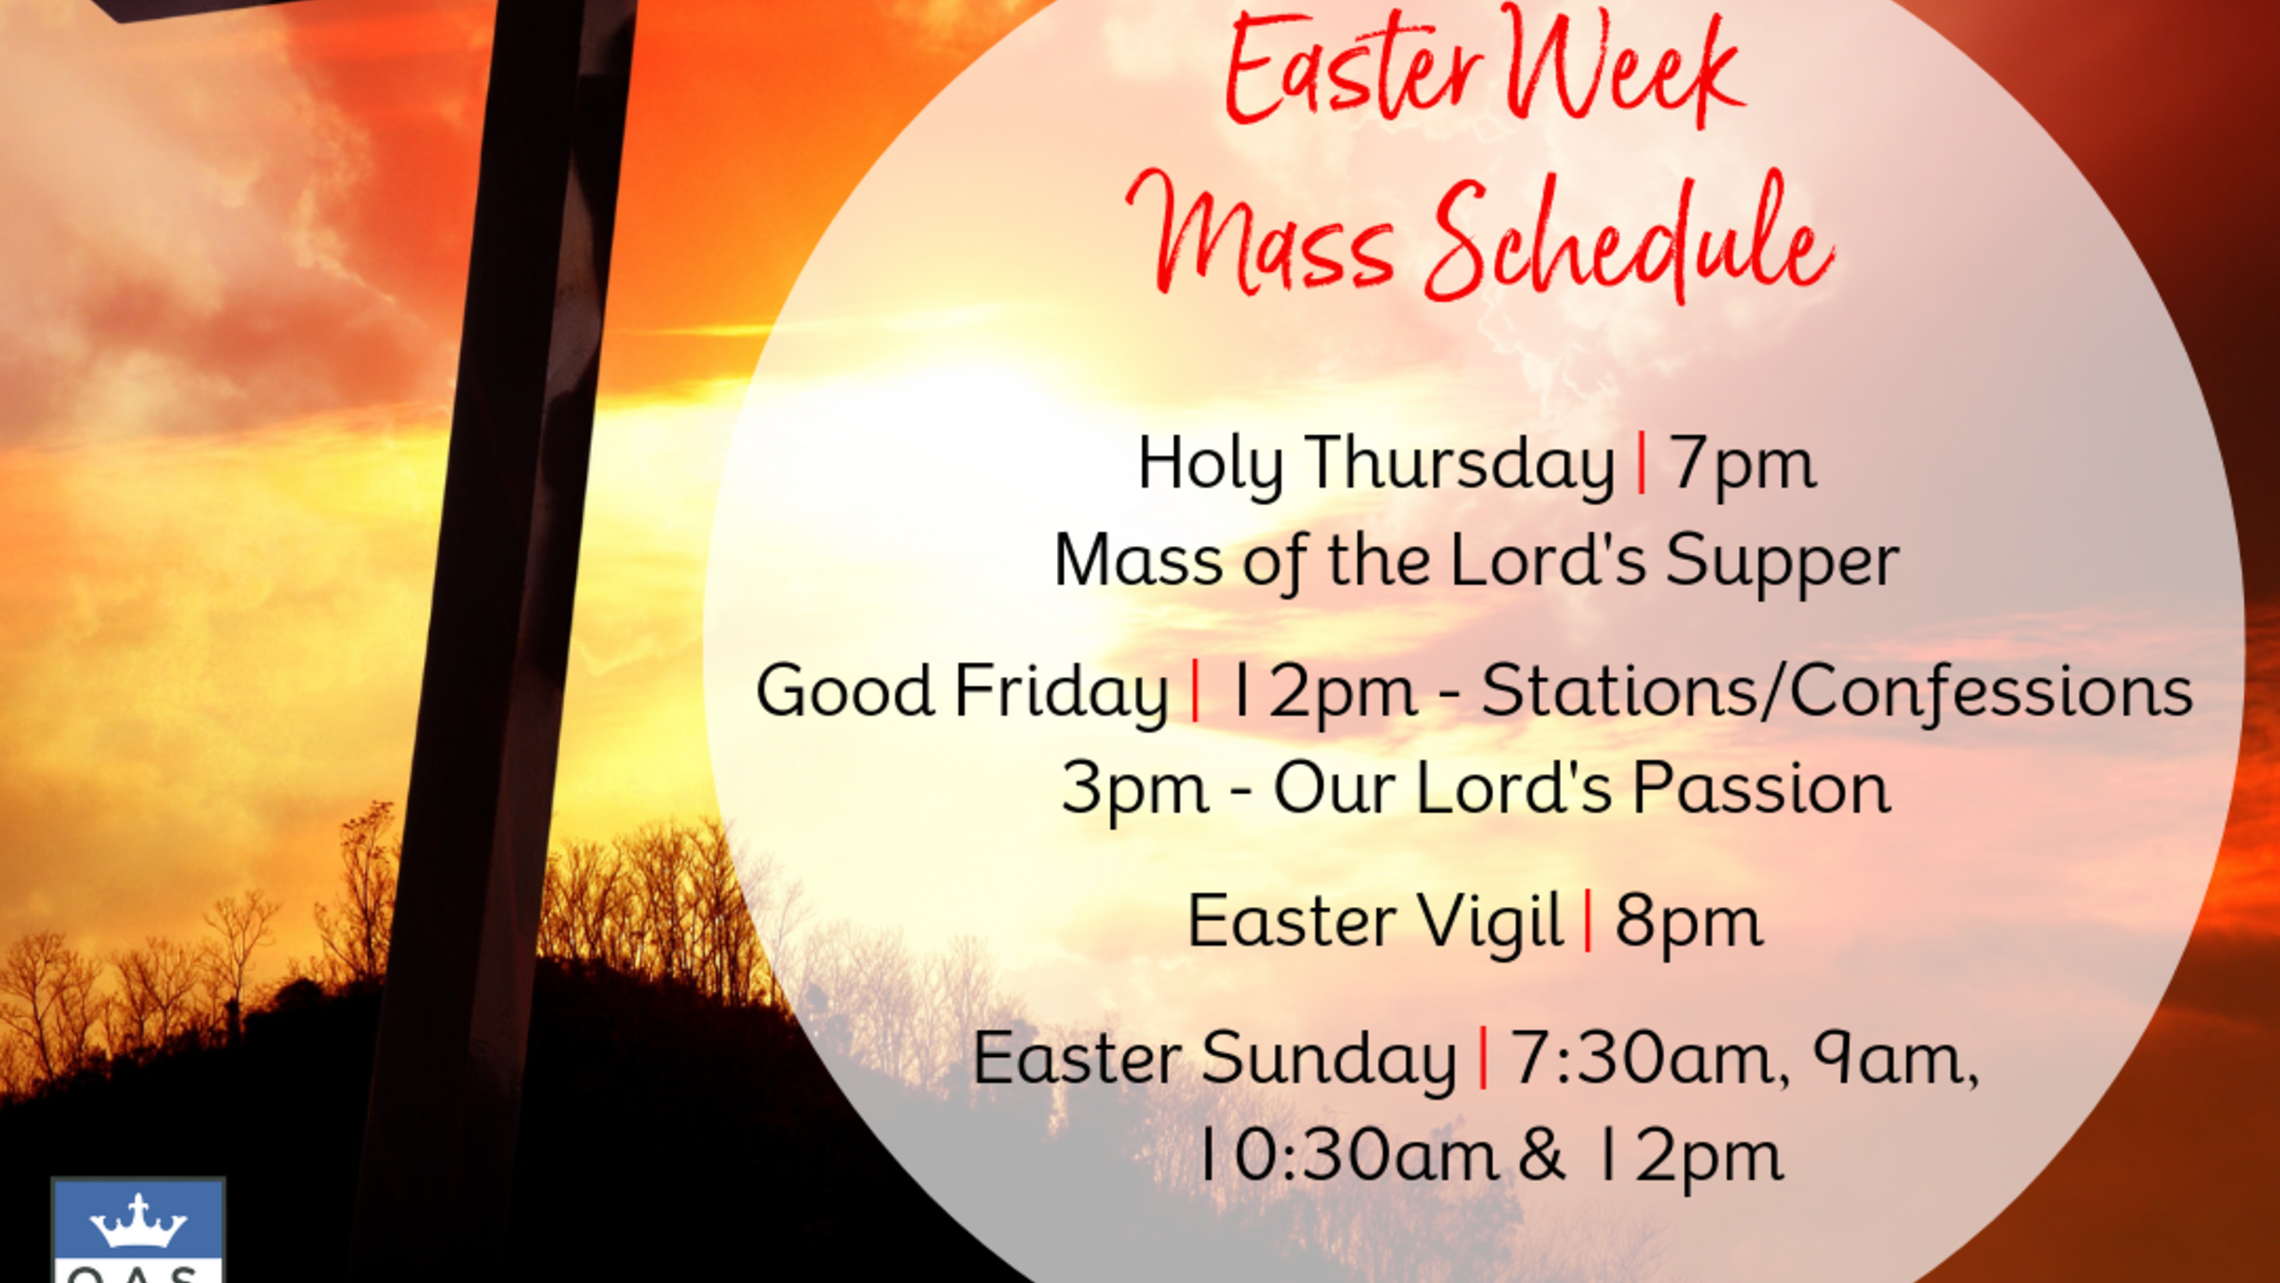 Easter Week Mass Schedule at QAS